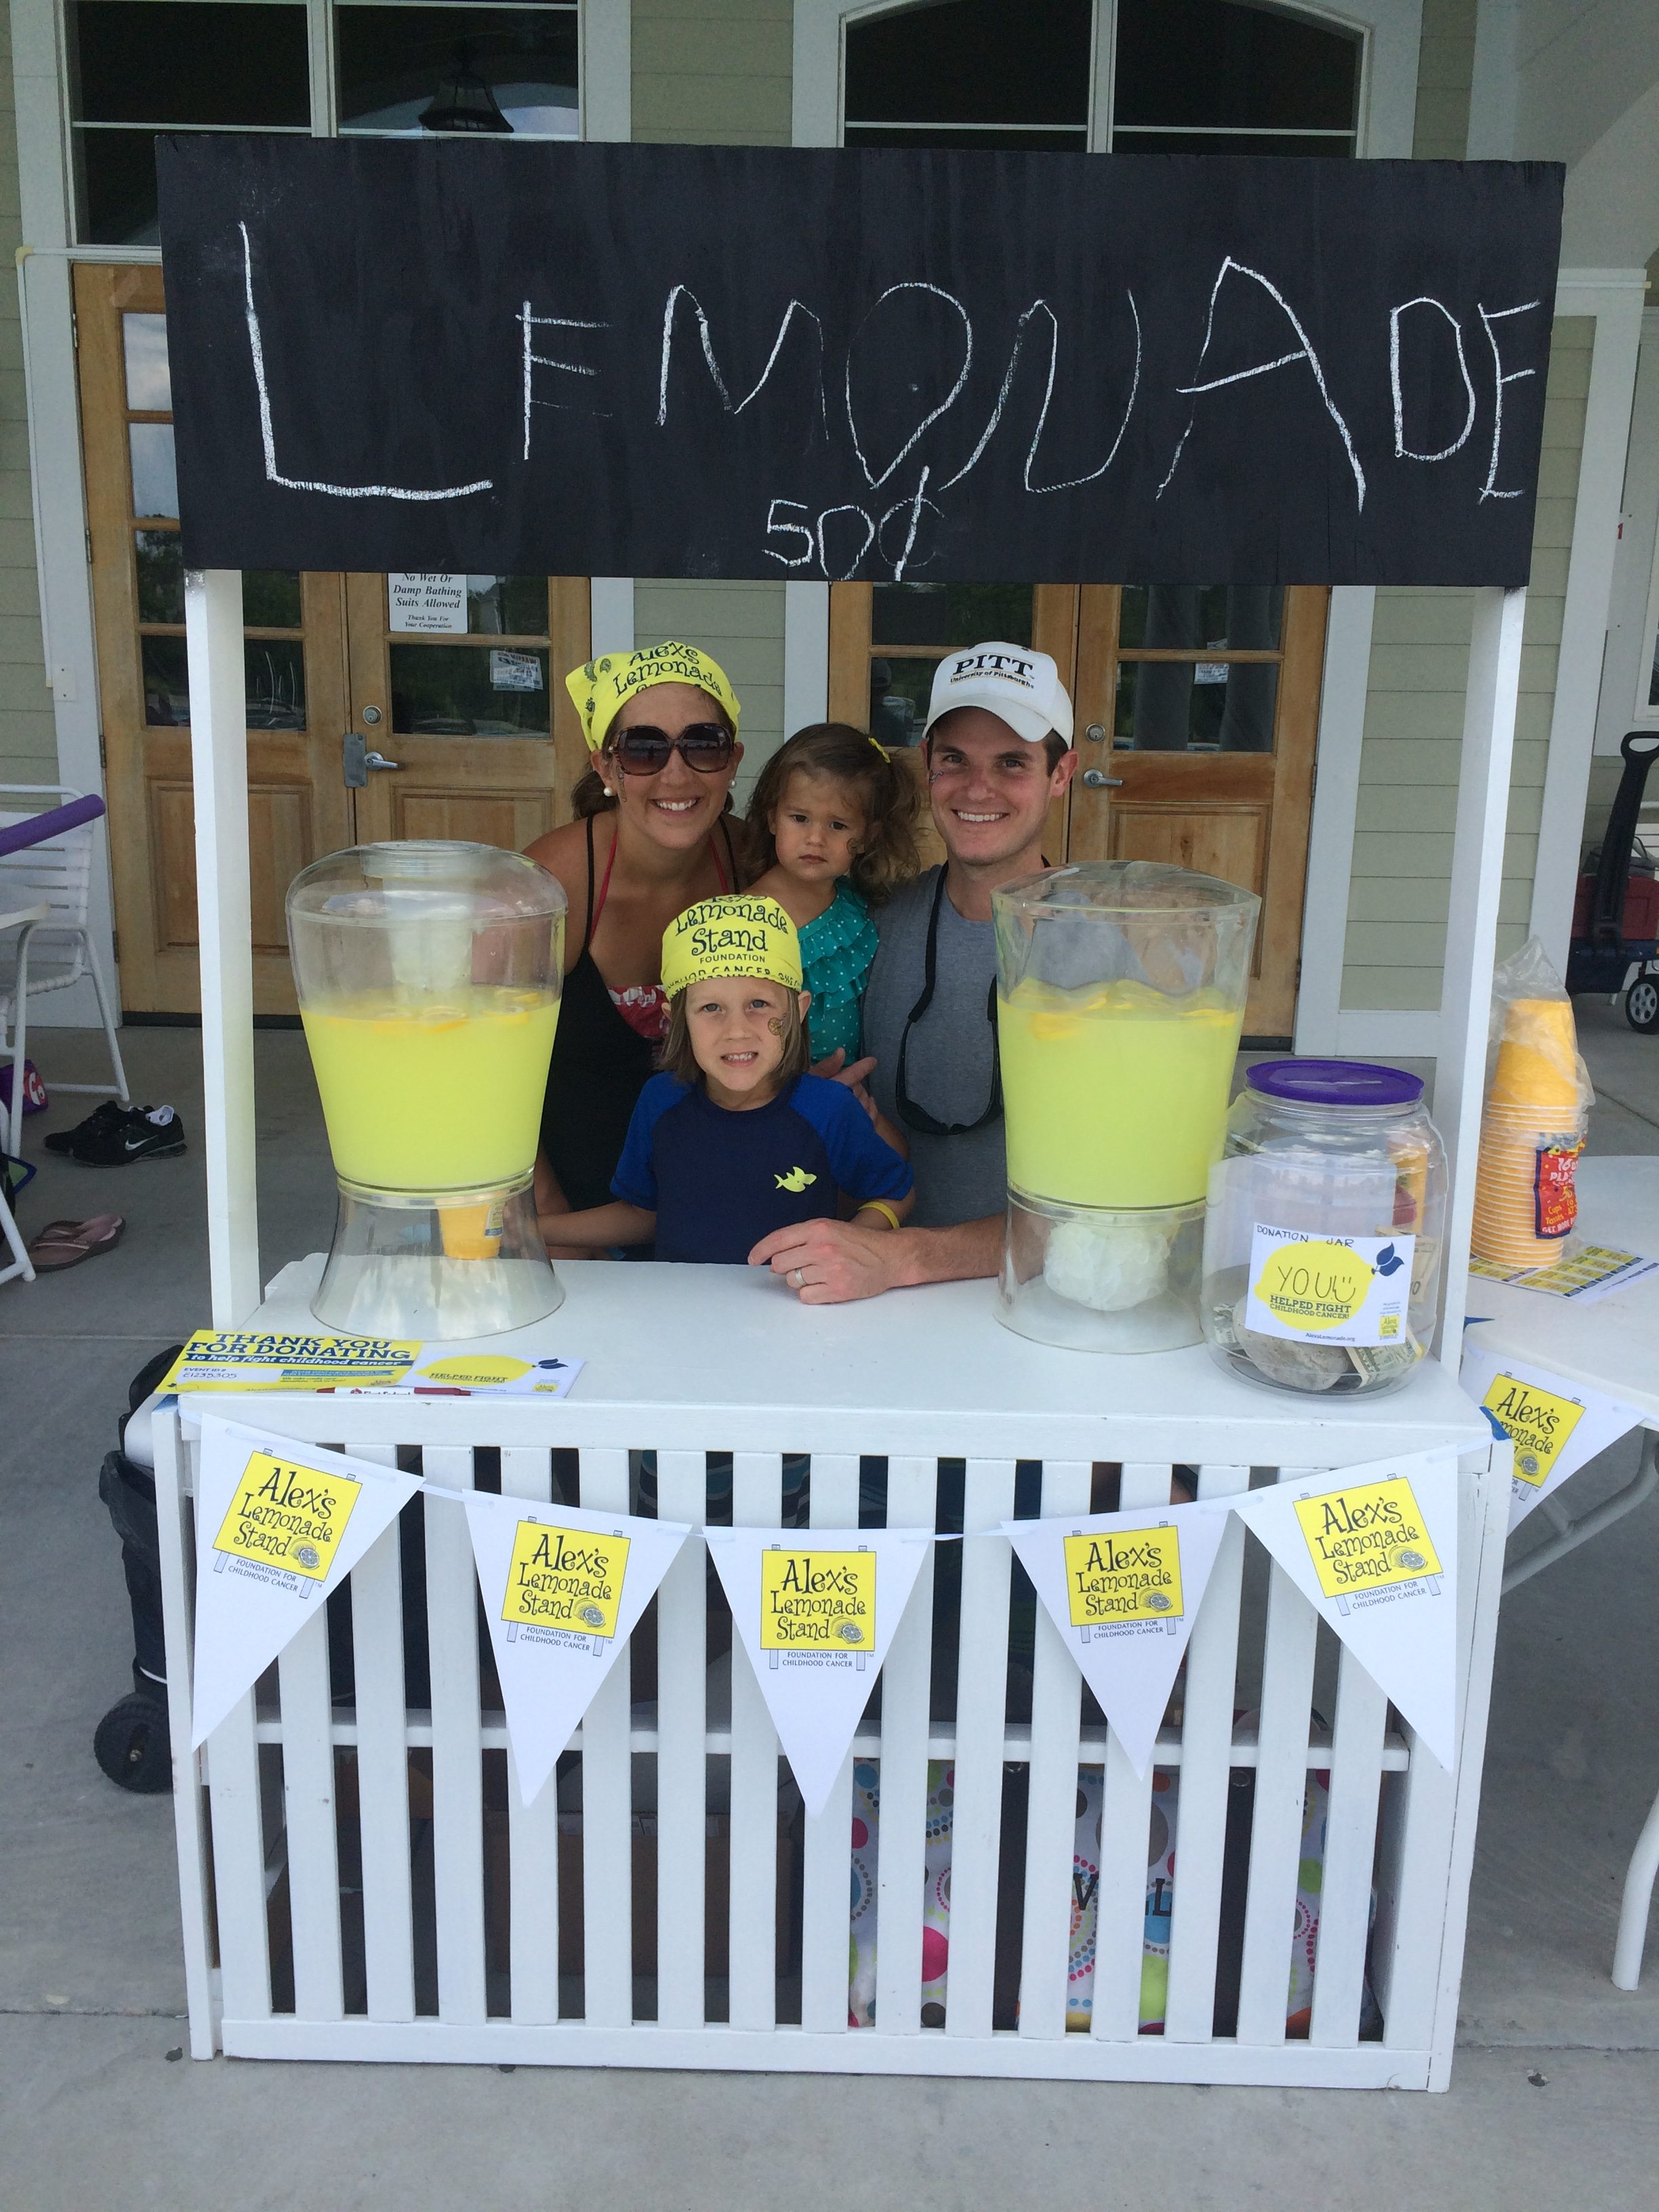 Our family at our 2016 Lemonade Stand to benefit Alex's Lemonade Stand Foundation.